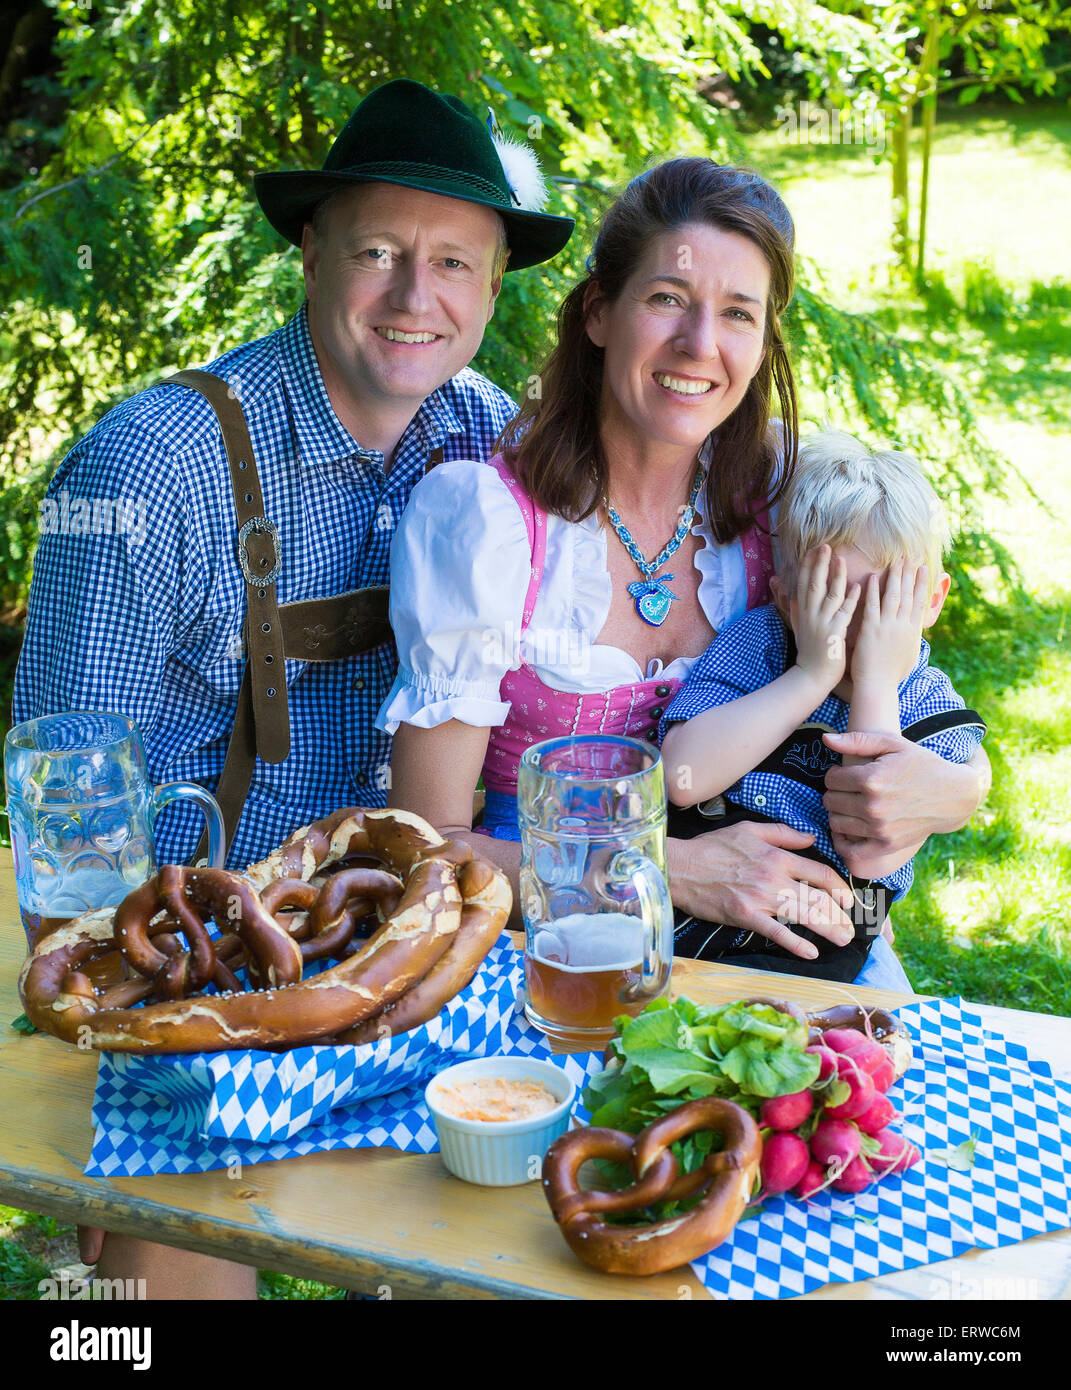 bavarian family sitting outside on a bench and smiling Stock Photo